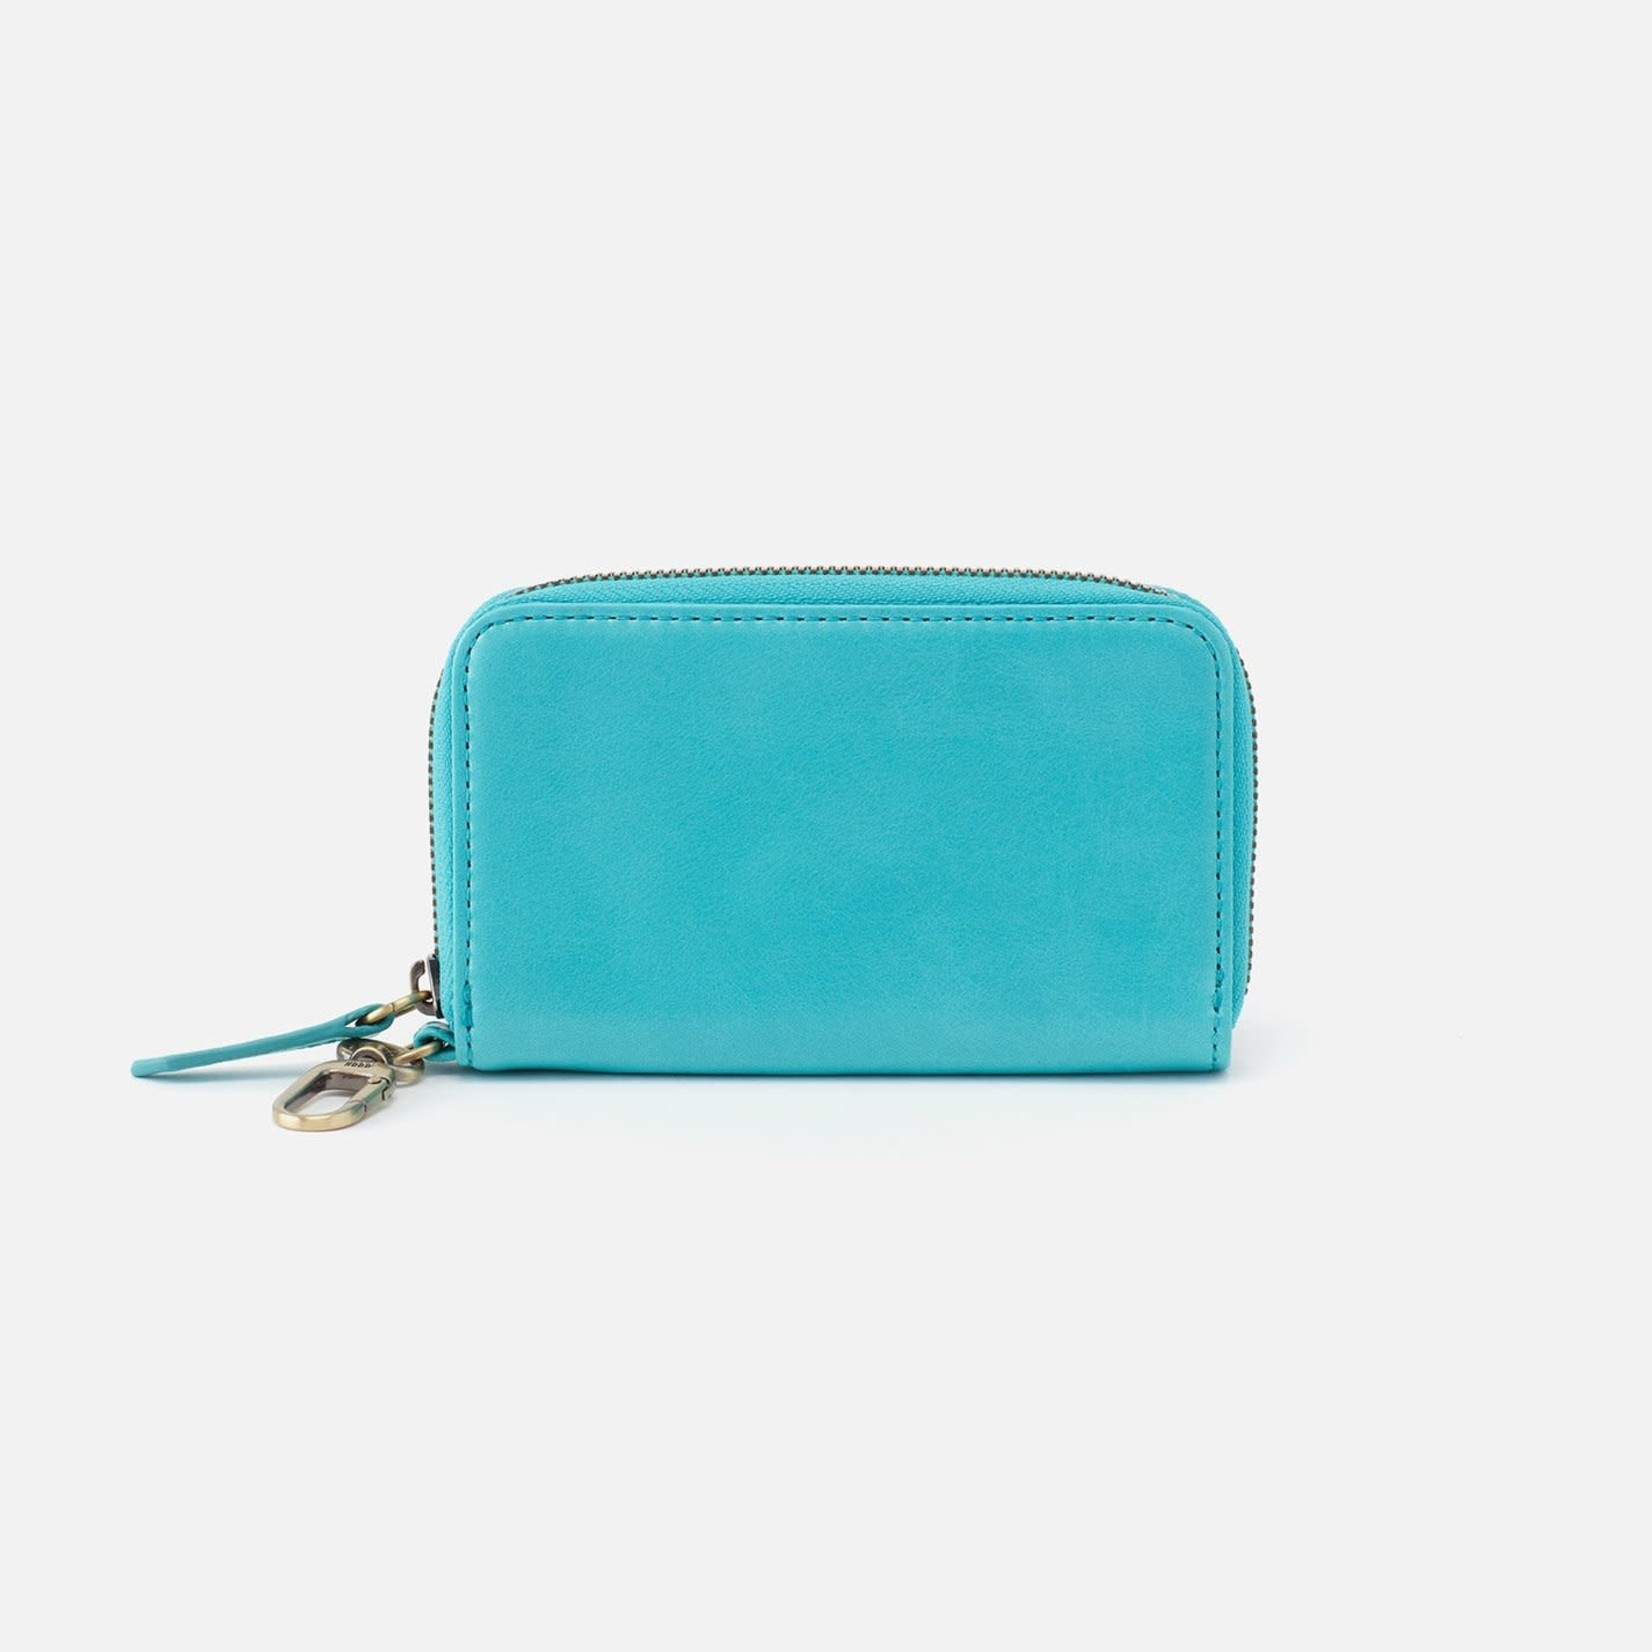 HOBO Move Aqua Vintage Leather Clip Wallet